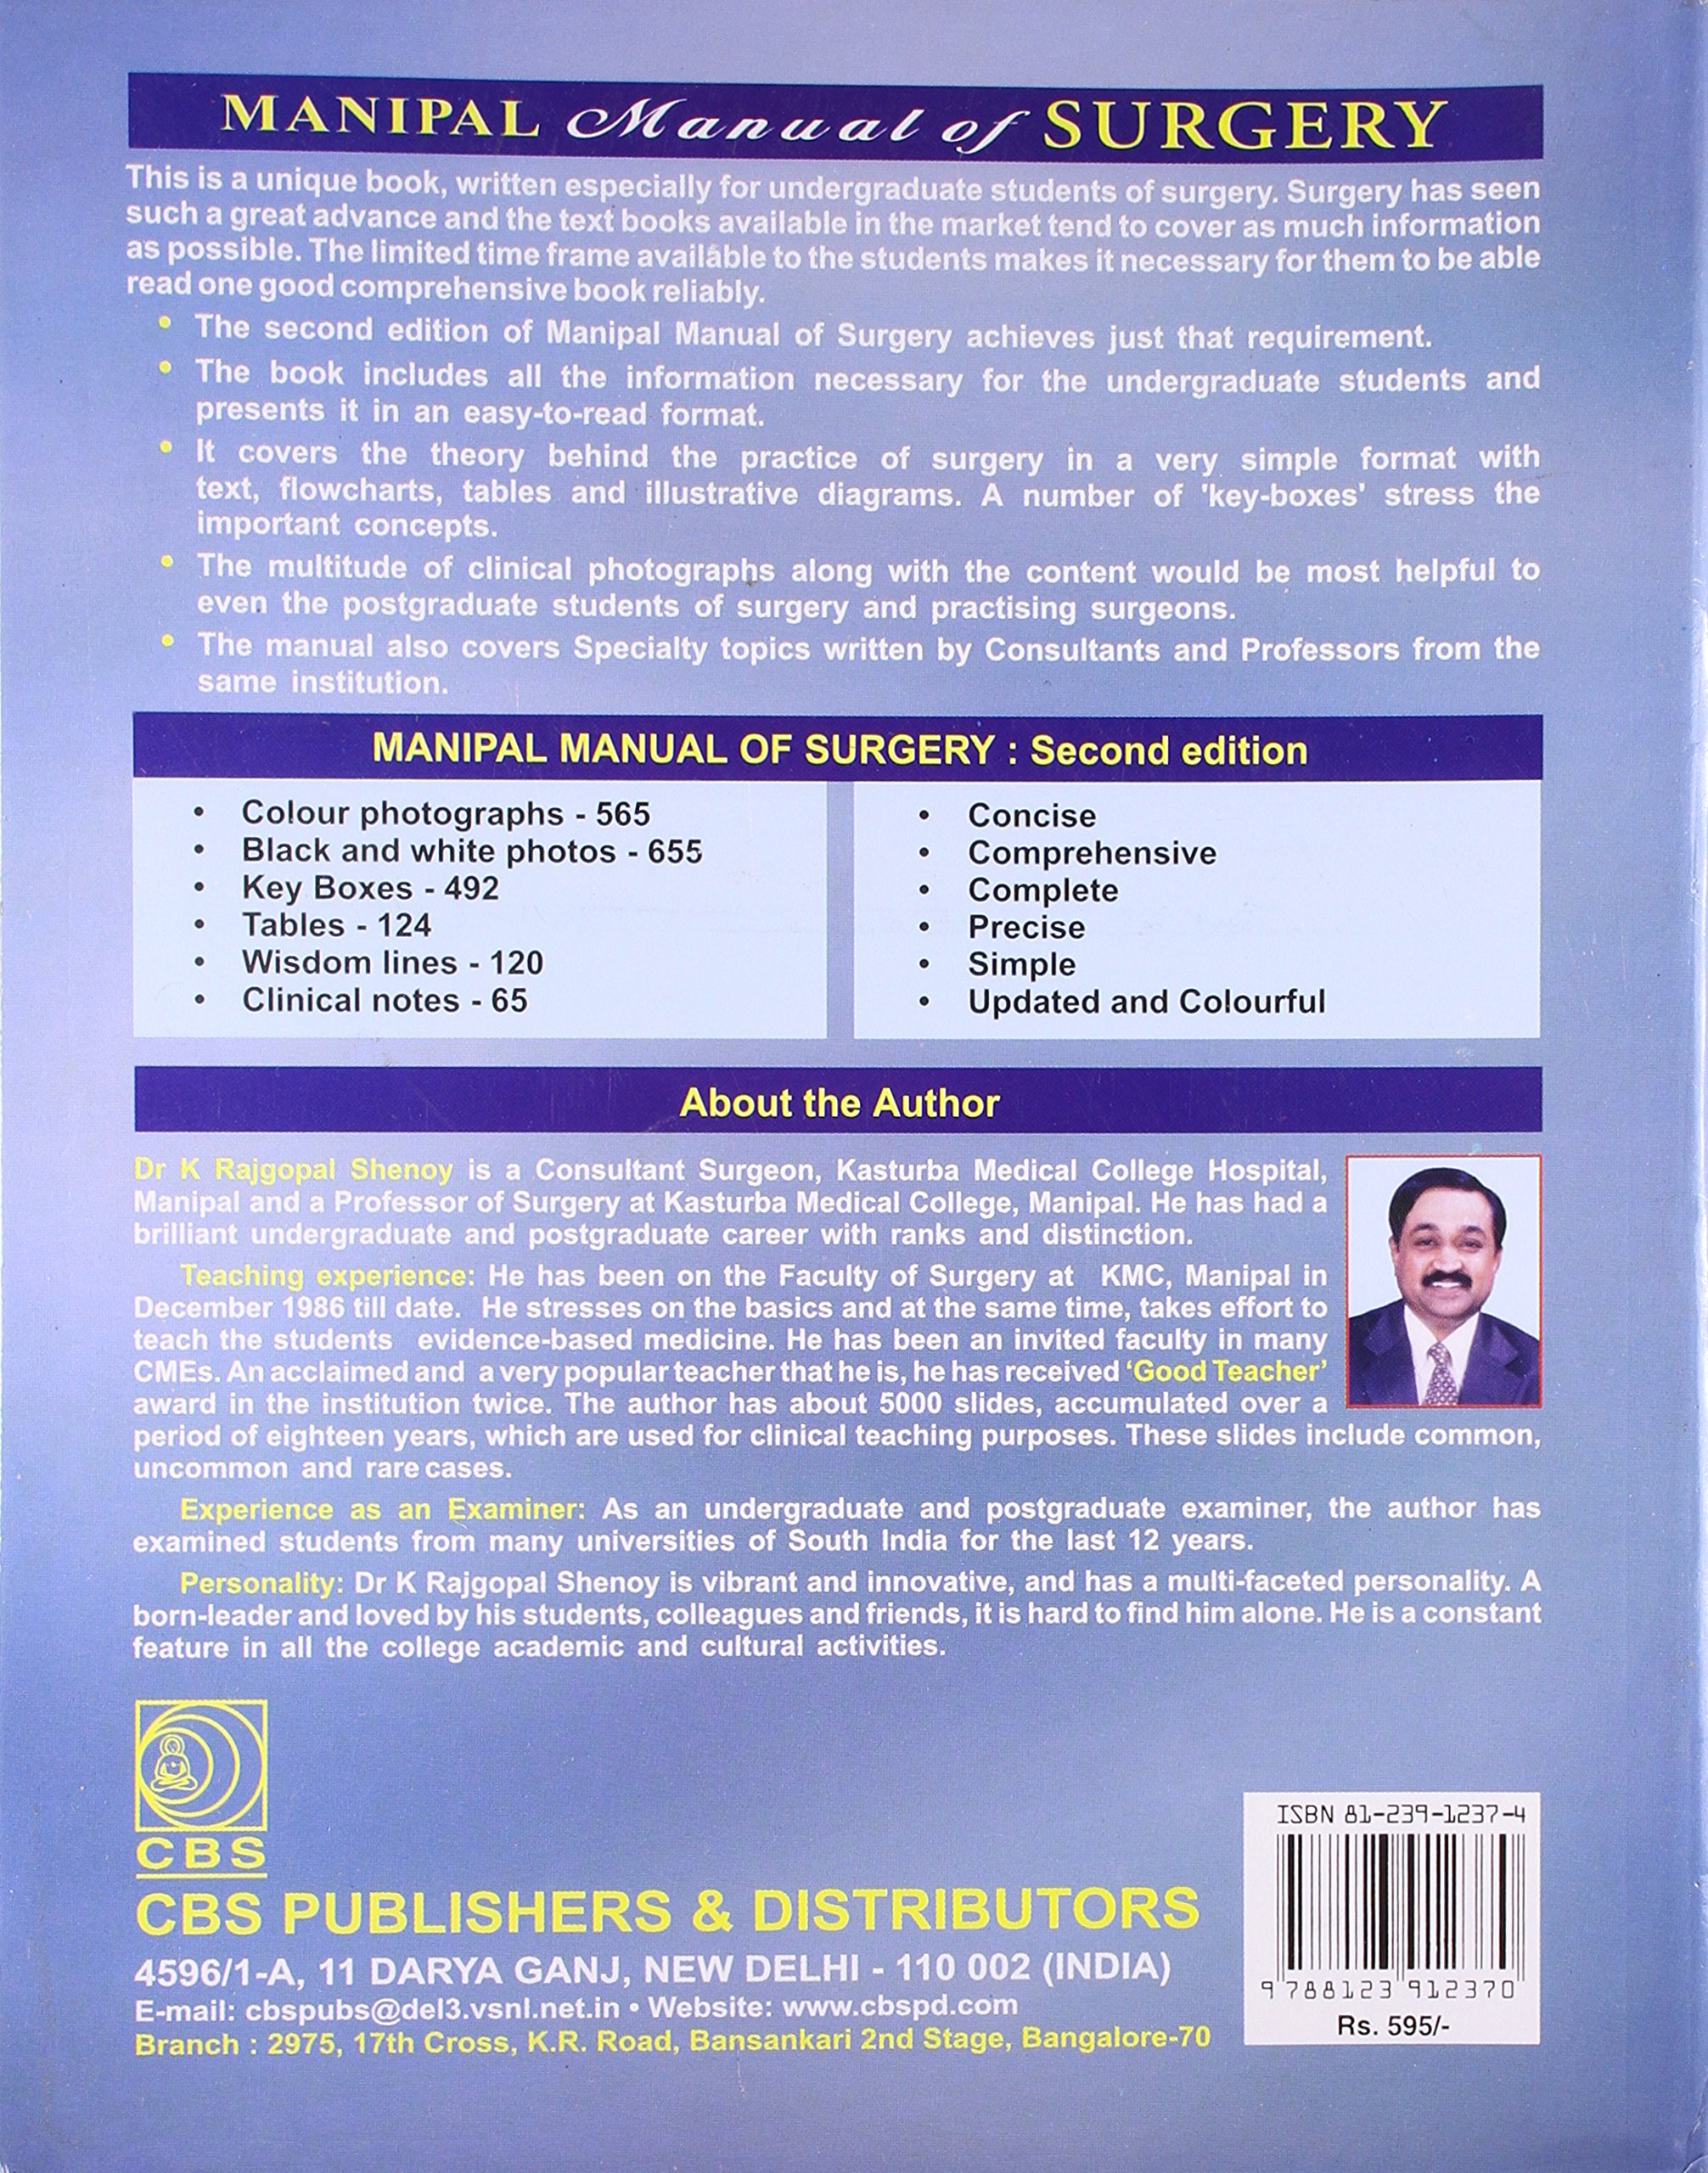 Buy Manipal Manual of Surgery: 0 Book Online at Low Prices in India | Manipal  Manual of Surgery: 0 Reviews & Ratings - Amazon.in